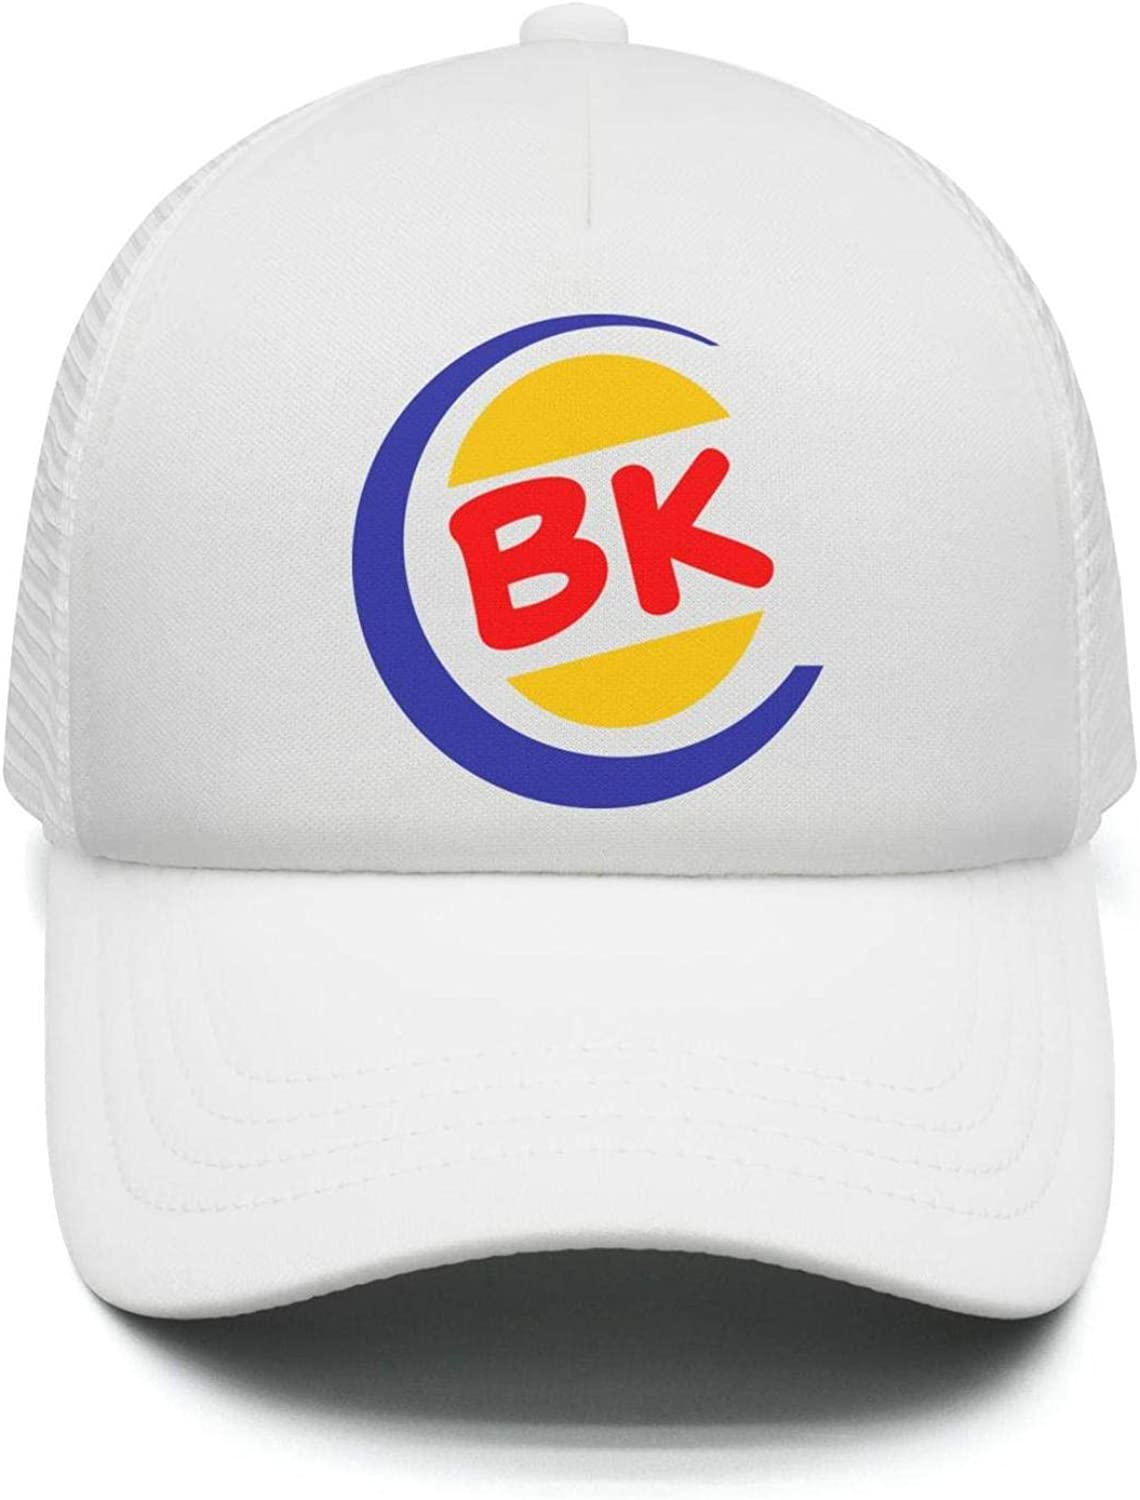 Cap Soft Baseball Hat UONDLWHER Adjustable Unisex Burger-King-Logo